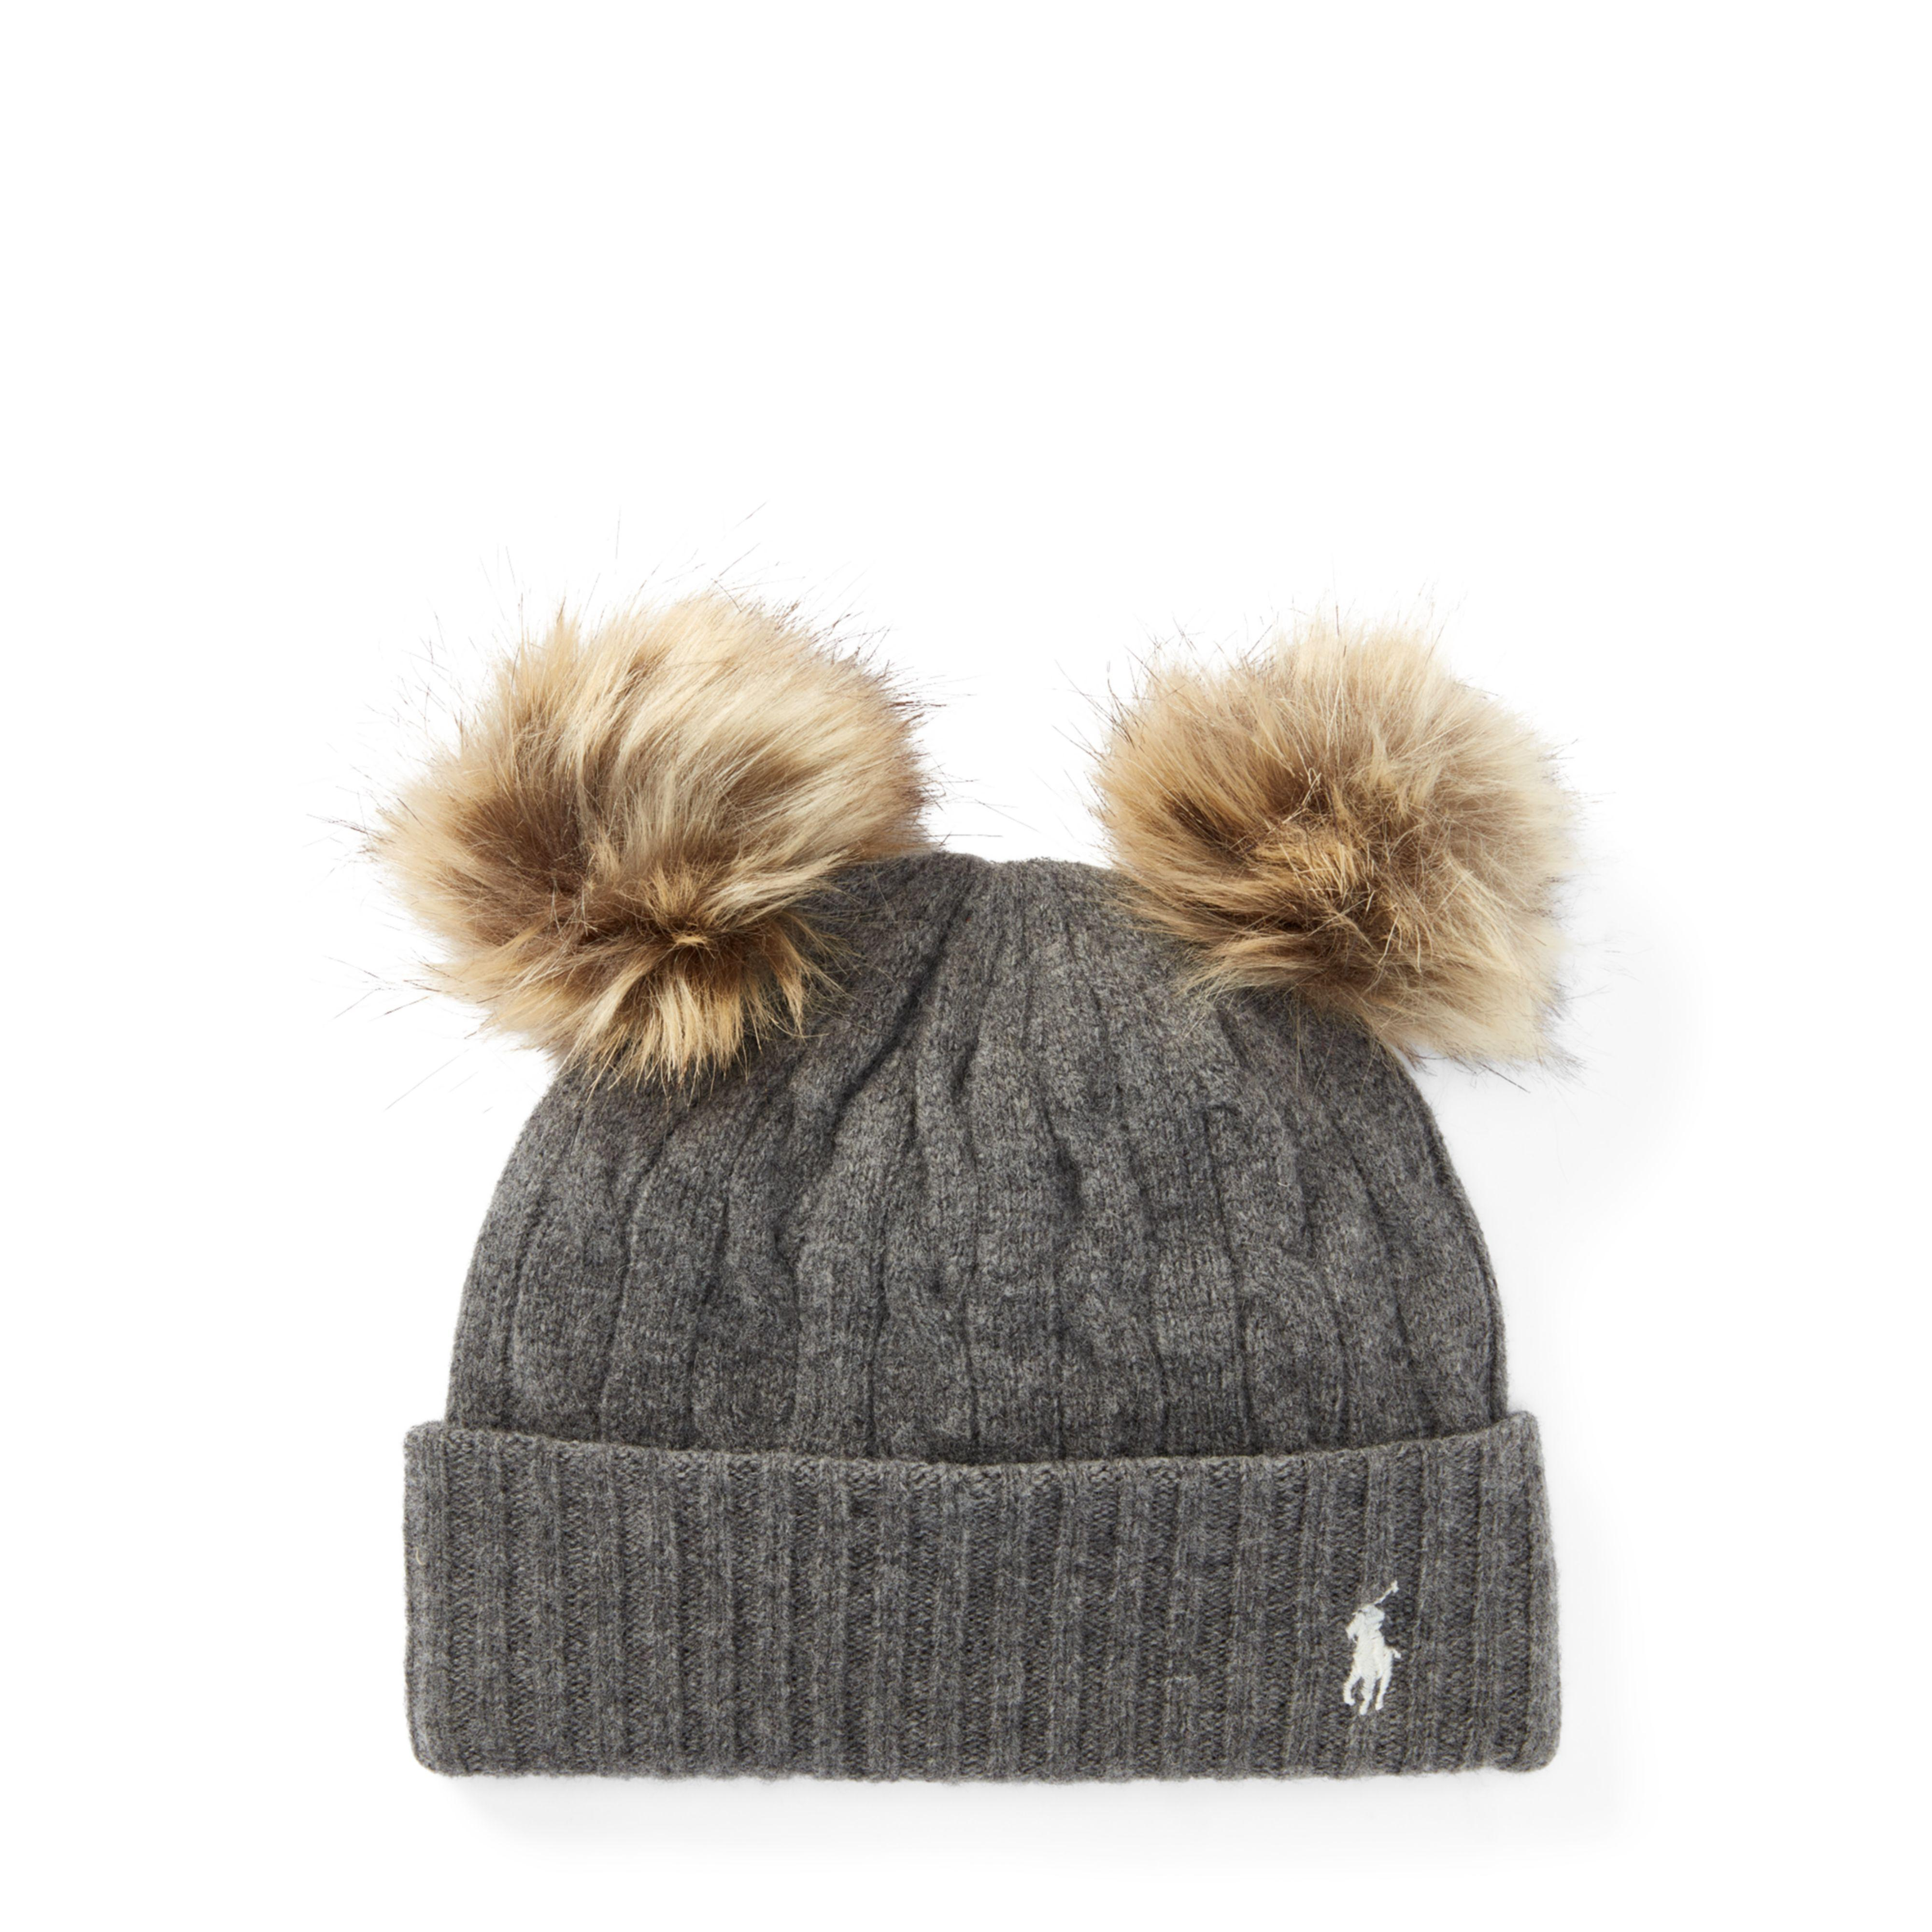 c82020fd8c6 Lyst - Polo Ralph Lauren Double-pom-pom Wool Hat